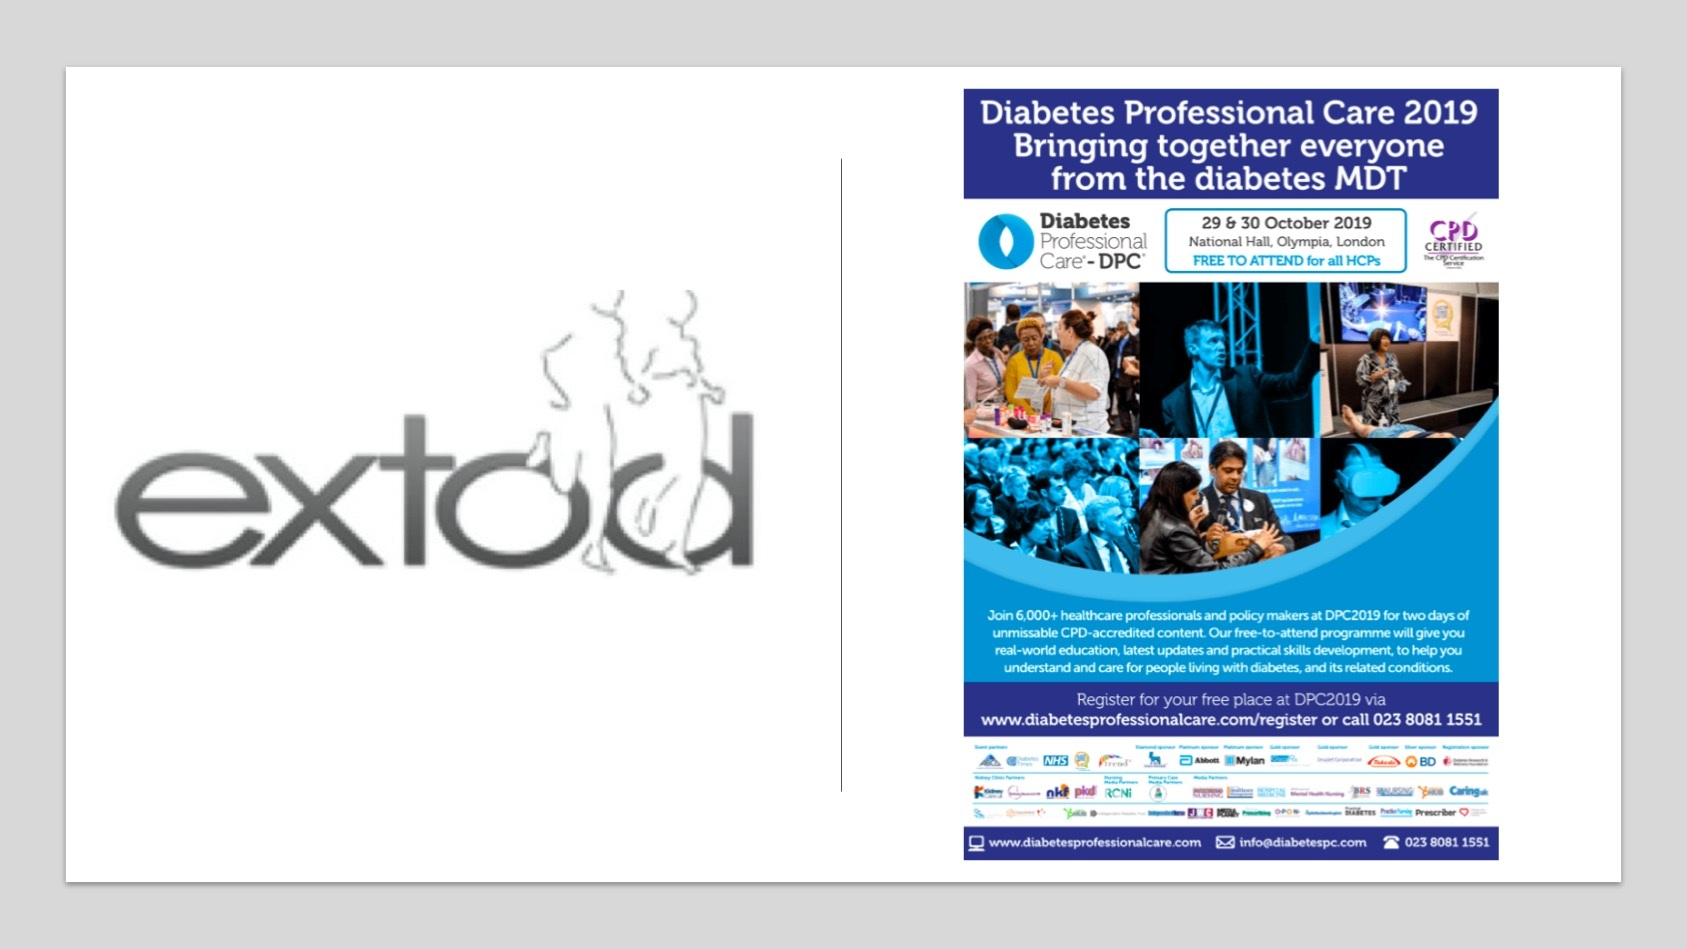 Diabetes Professional Care conference 2019